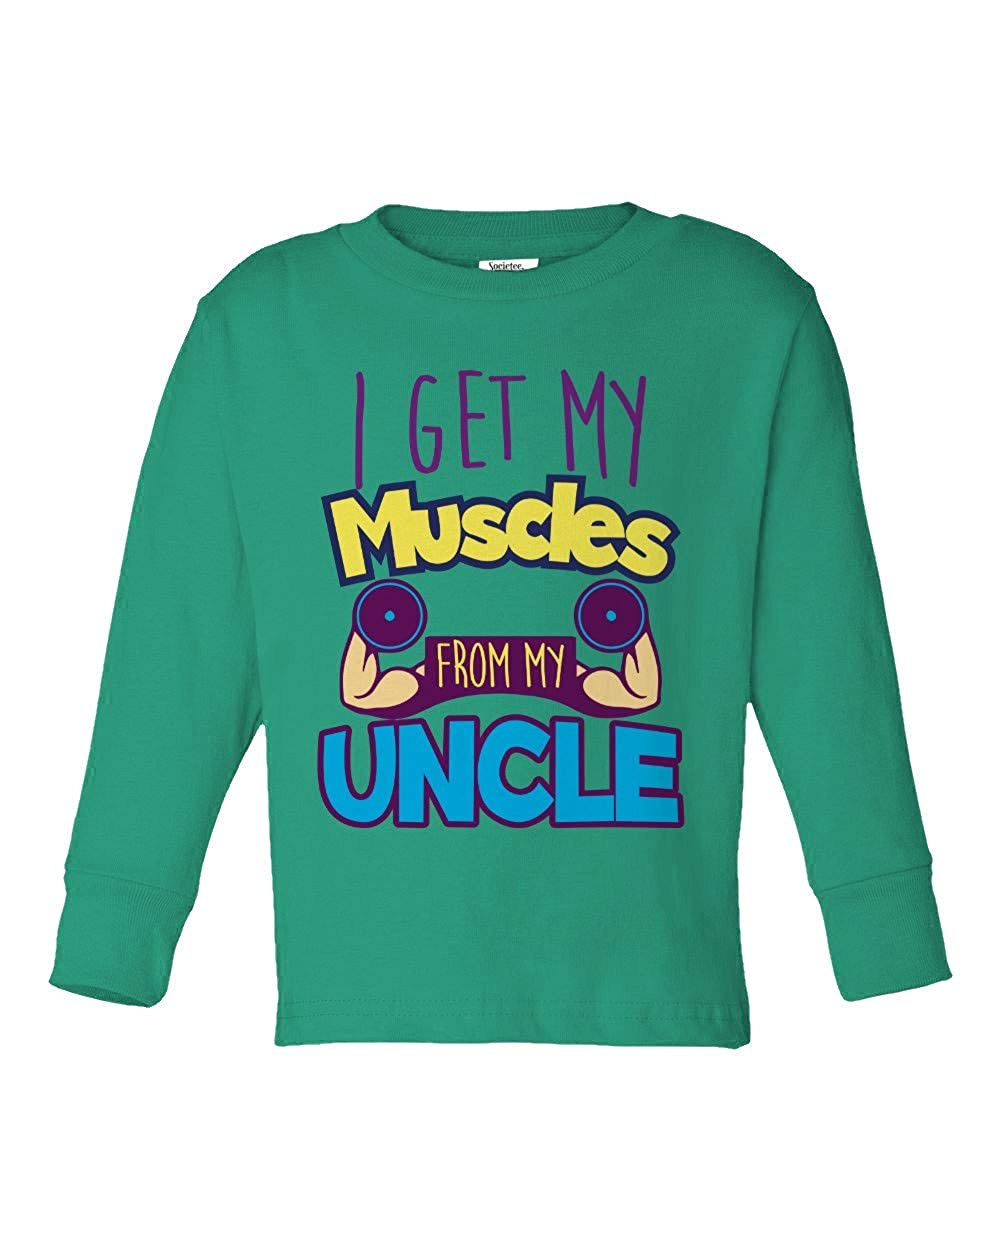 Societee I Get My Muscles from My Uncle Girls Boys Toddler Long Sleeve T-Shirt